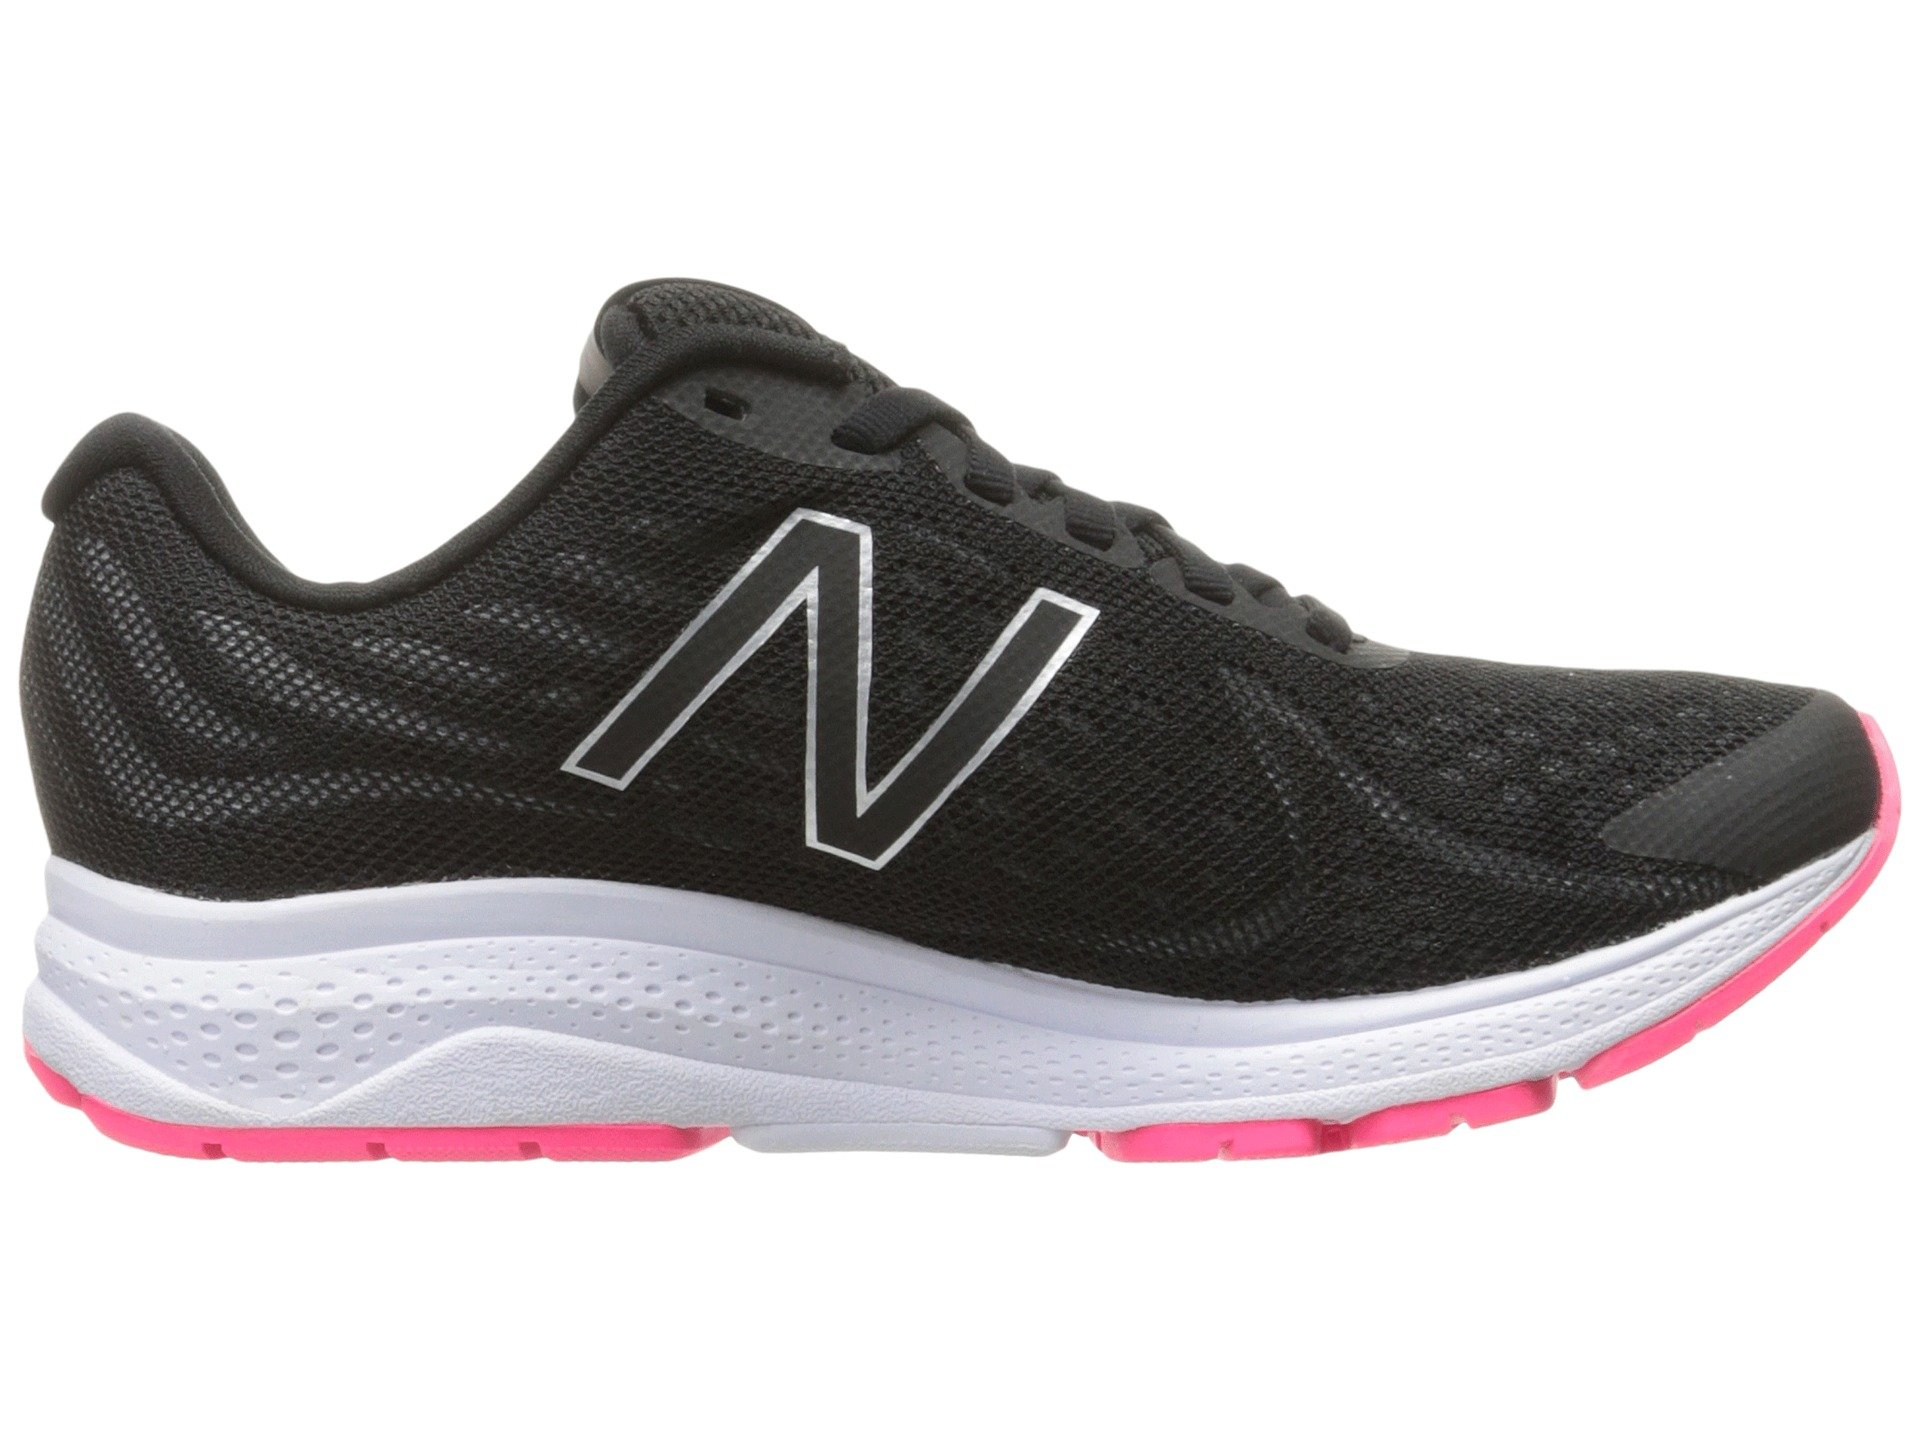 New balance vazee rush v2 mens running shoes black multi online - Video